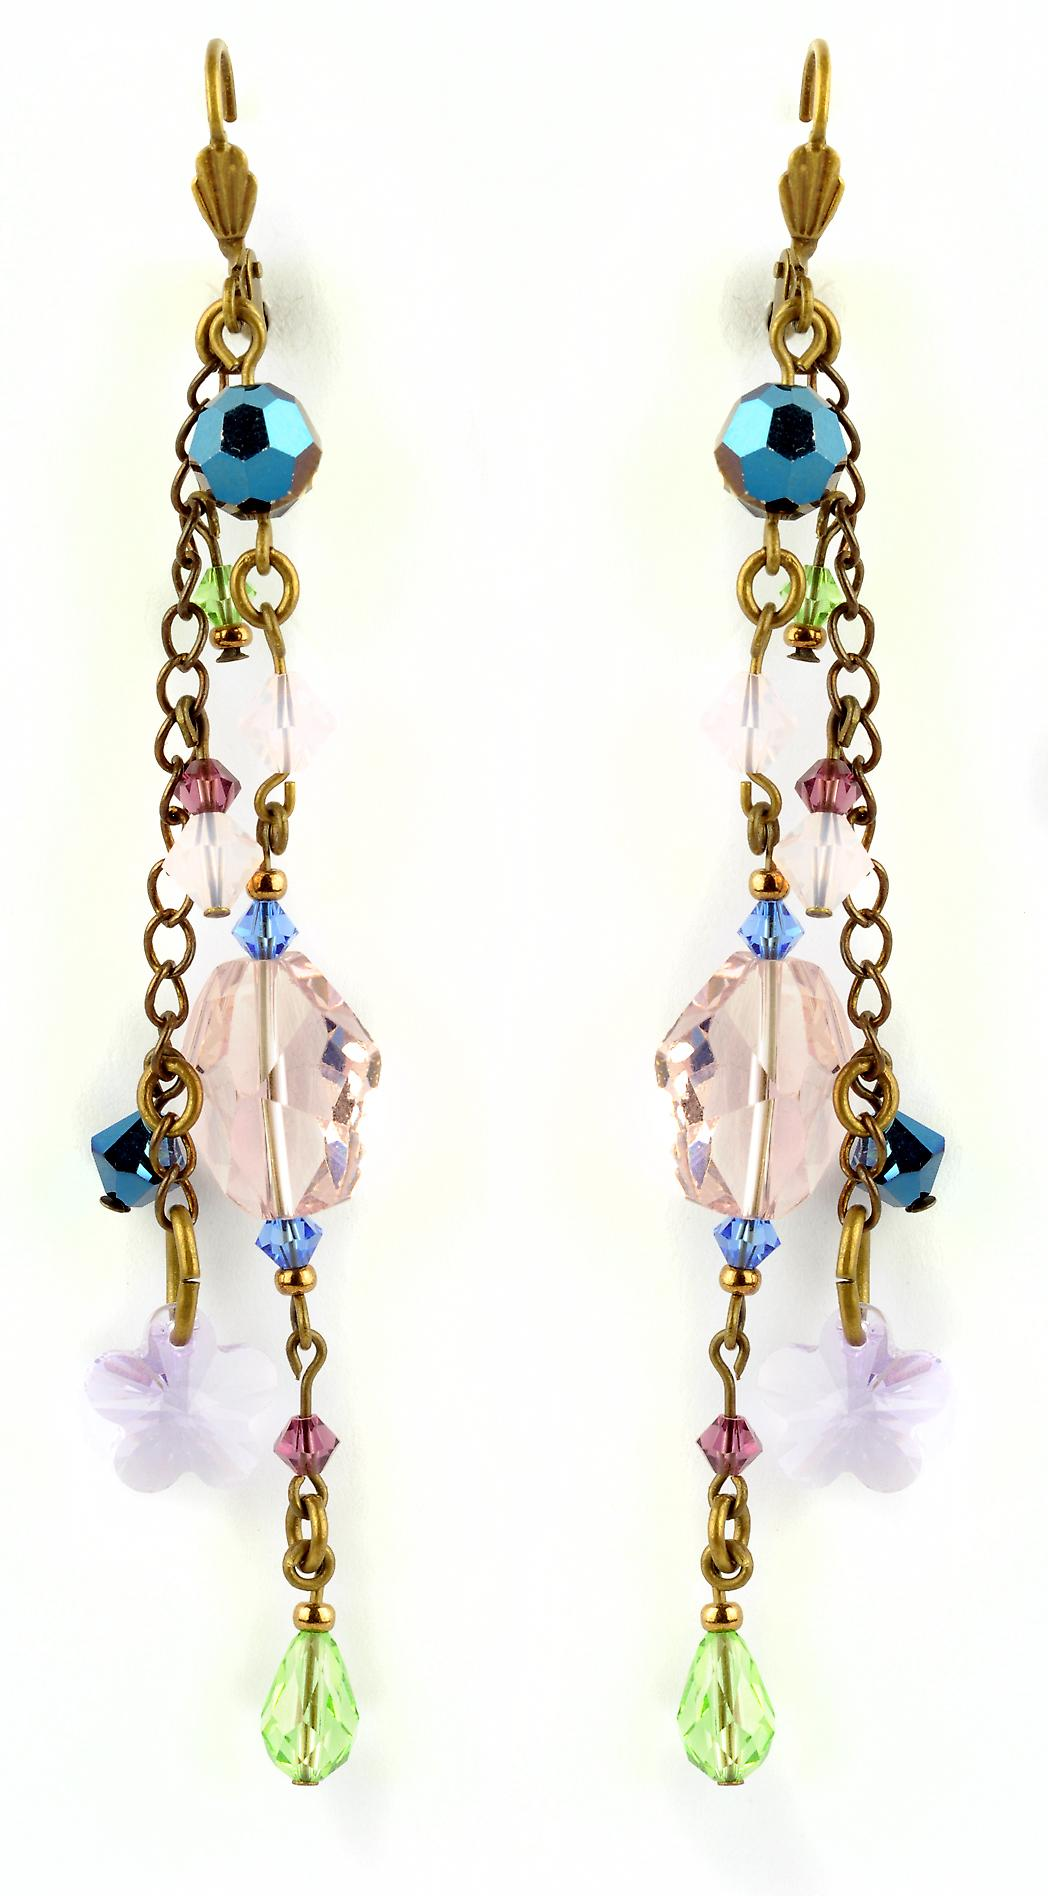 Waooh - jewelry - WJ0818 - earrings with Swarovski Blue Pink White Green - mount colour gold rhinestones